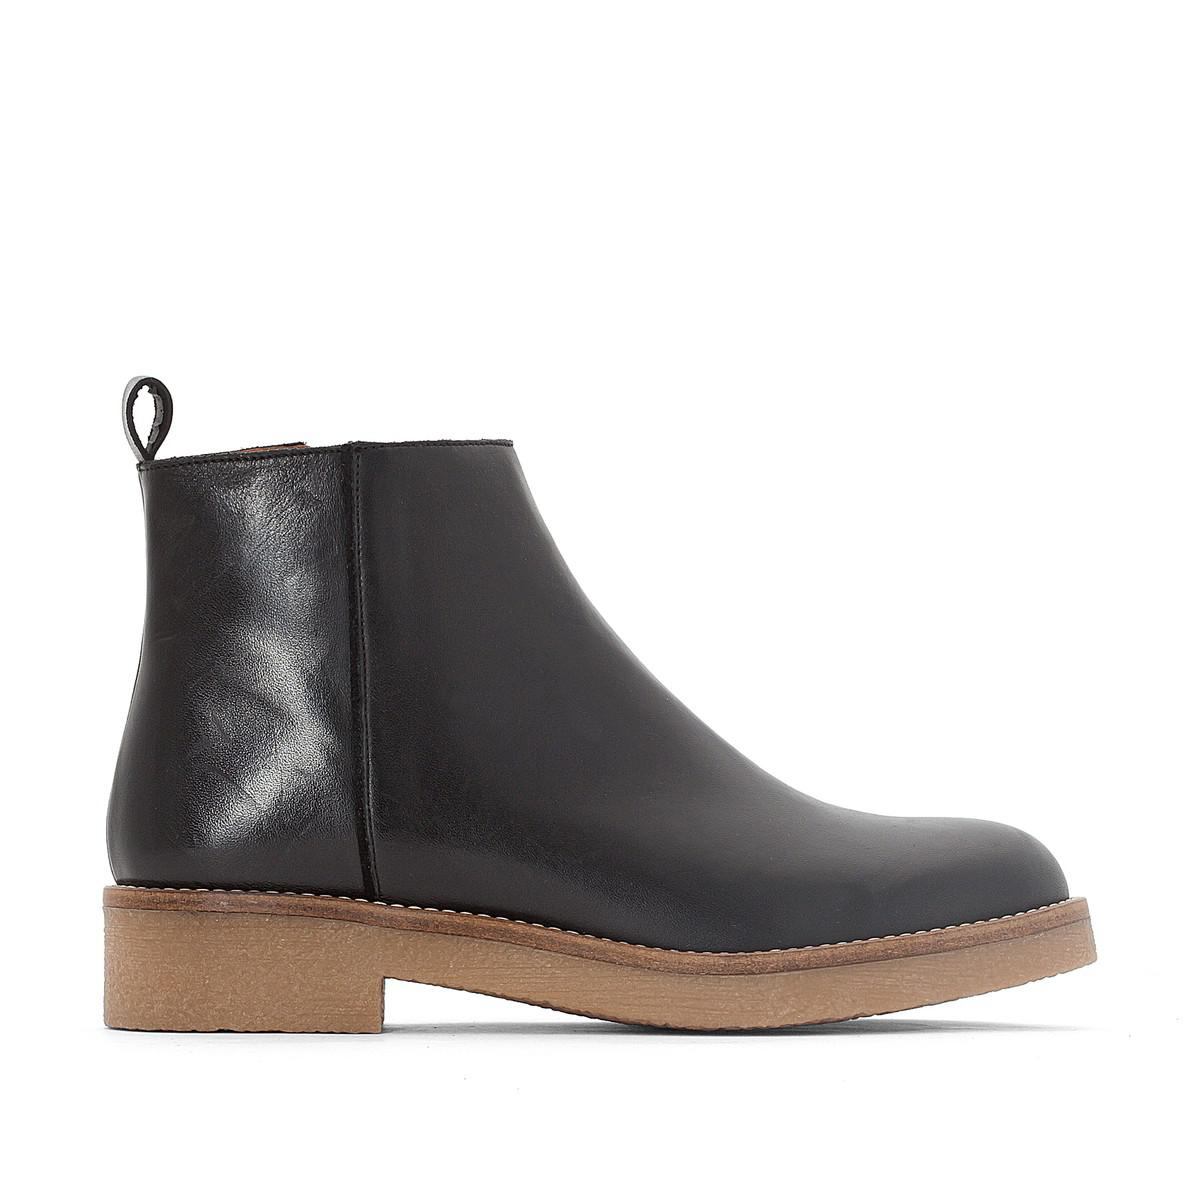 La Redoute Collections Ankle Boots with Studded Detail discount really with credit card for sale clearance best place 7x0lqvic